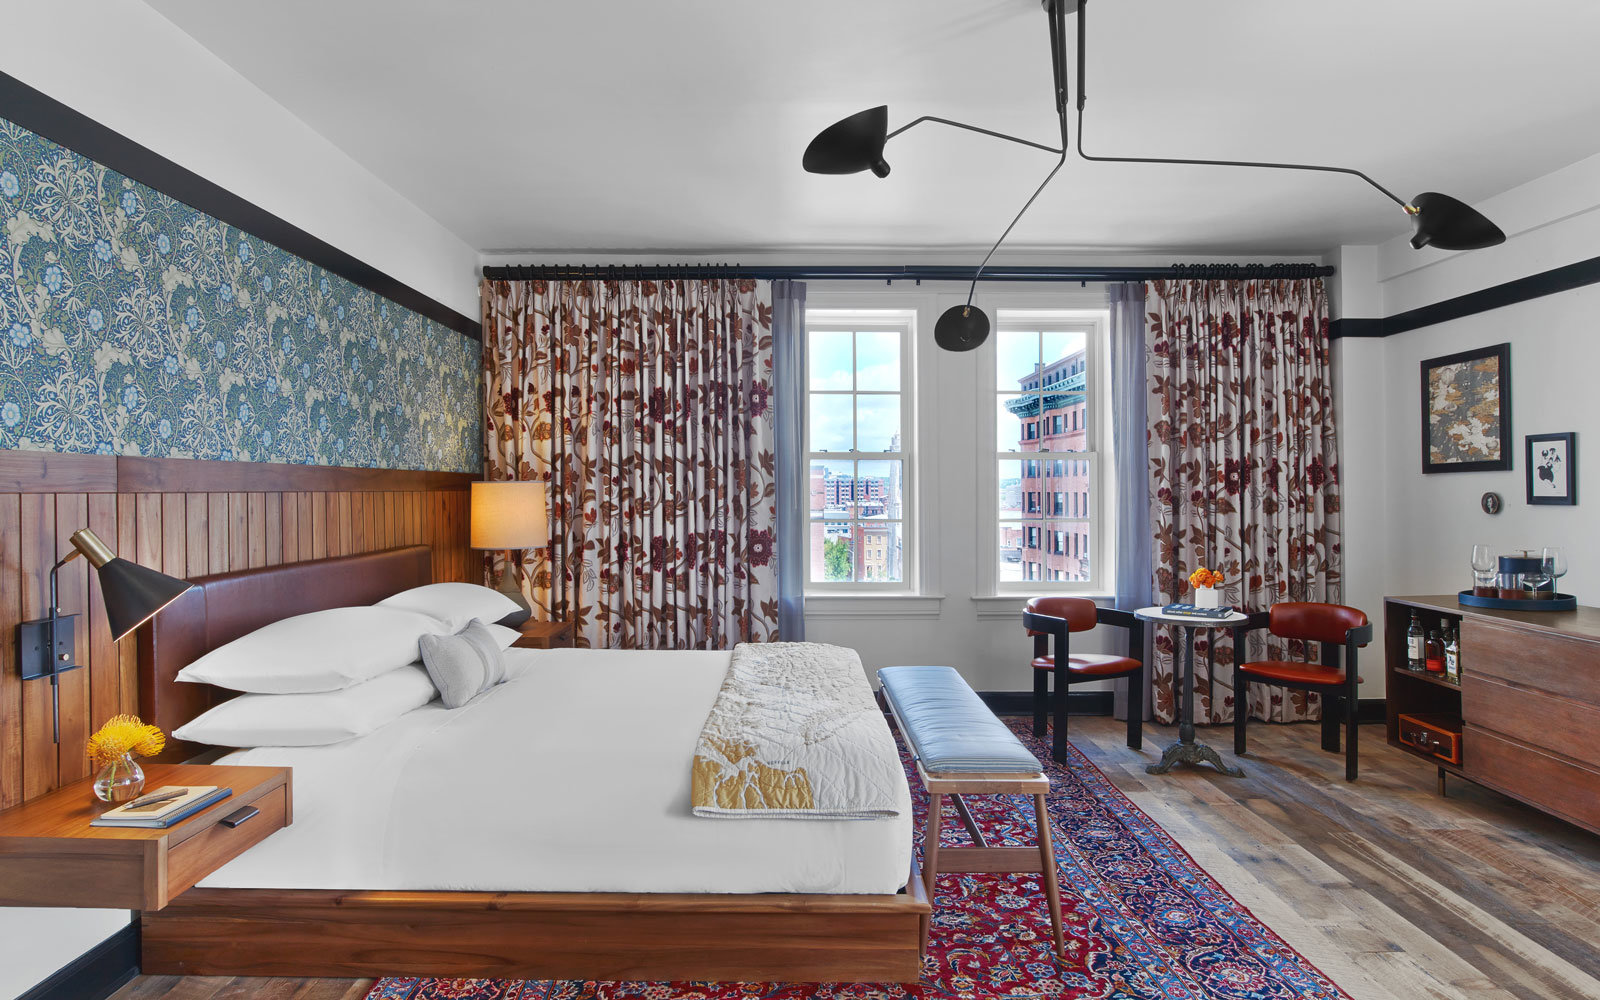 Hotel Revival in Baltimore